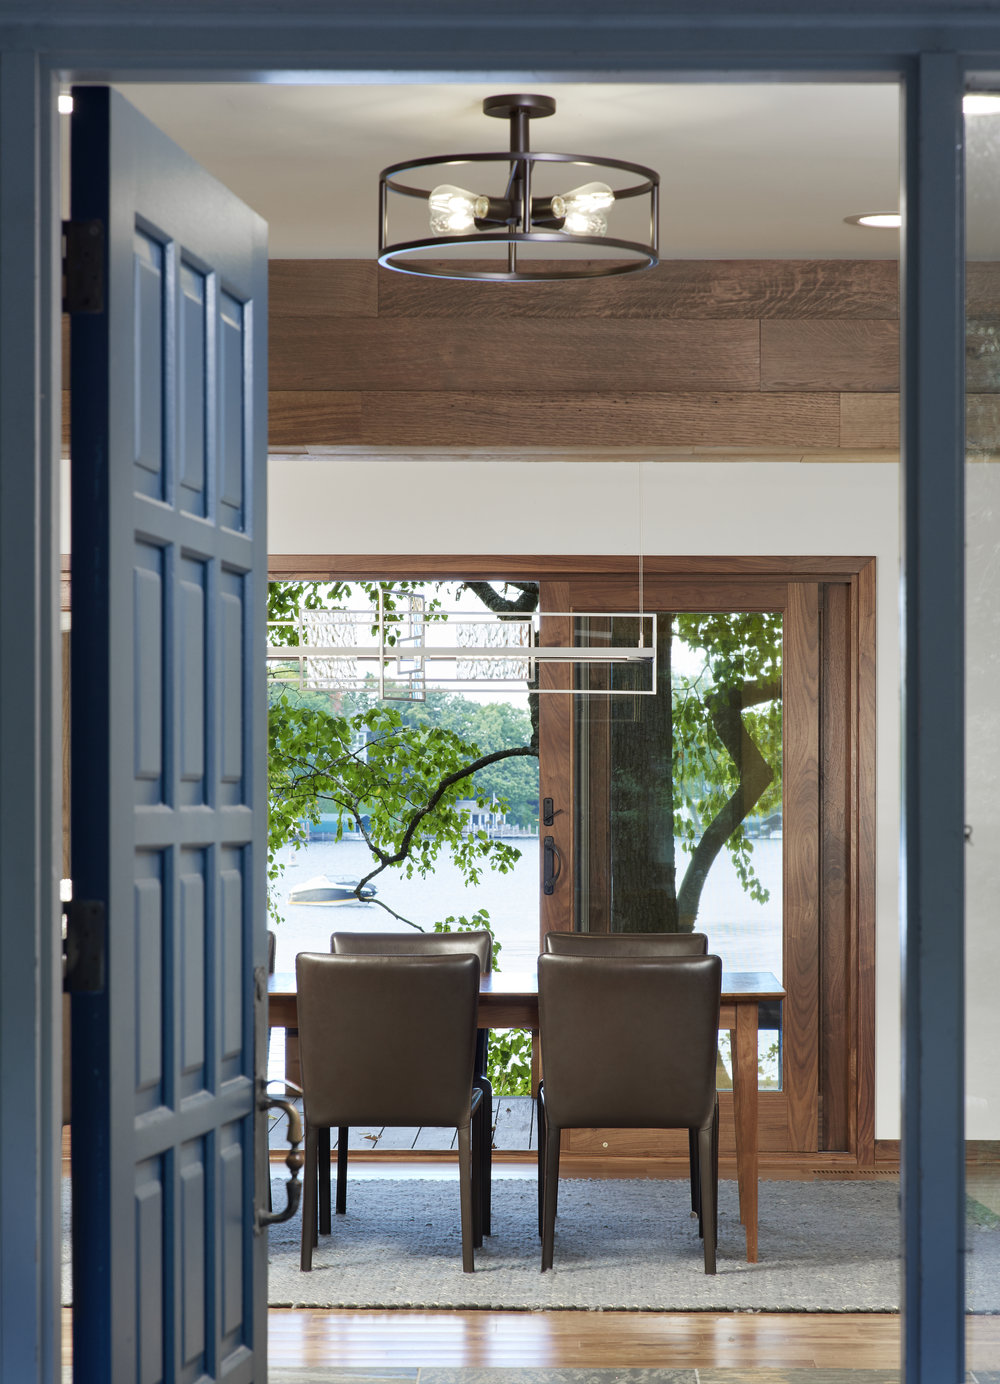 Blue interior door opens to dining room designed by designed by NewStudio Architecture with Lake Minnetonka view.